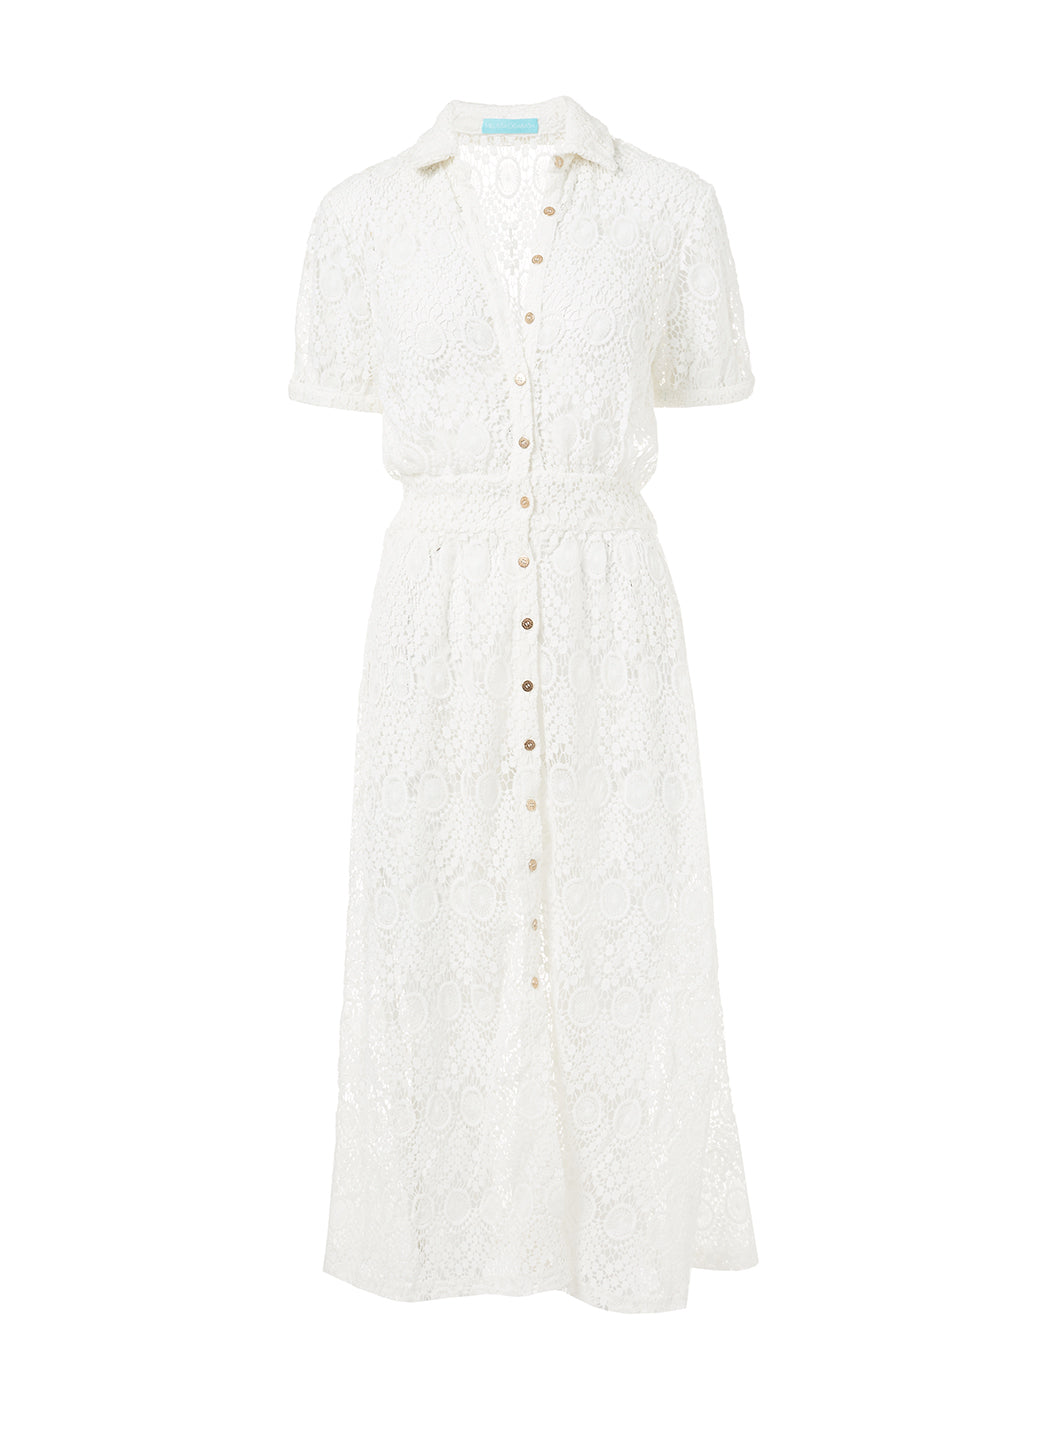 April Cream Lace Midi Button-Down Shirt Dress - Melissa Odabash Beachwear